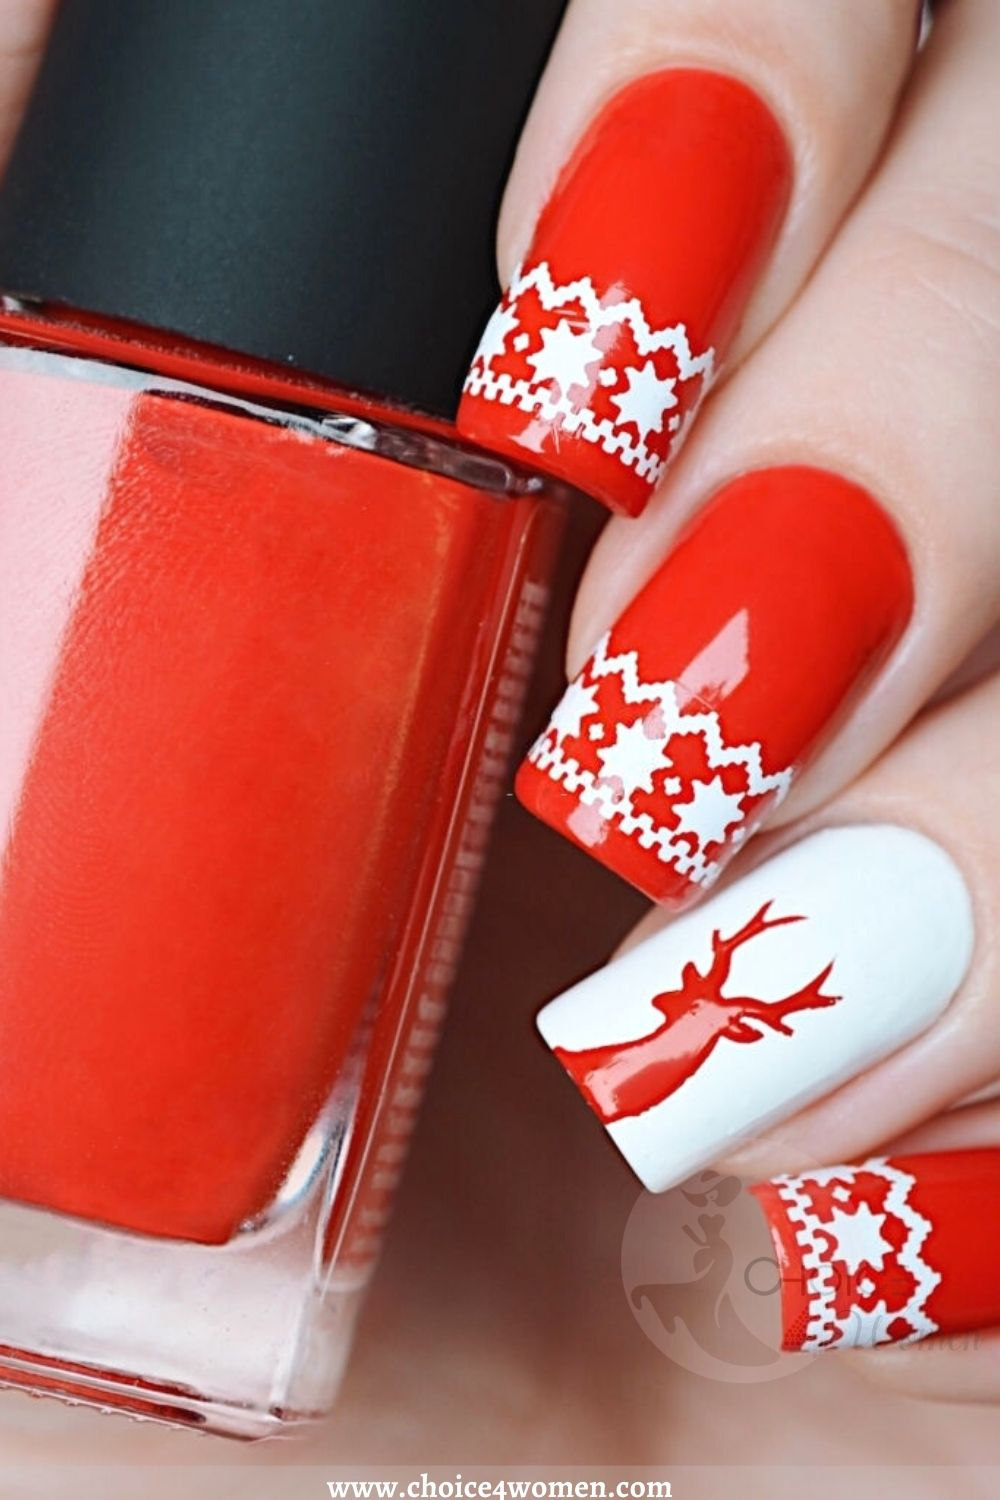 Simple Nail Designs in red